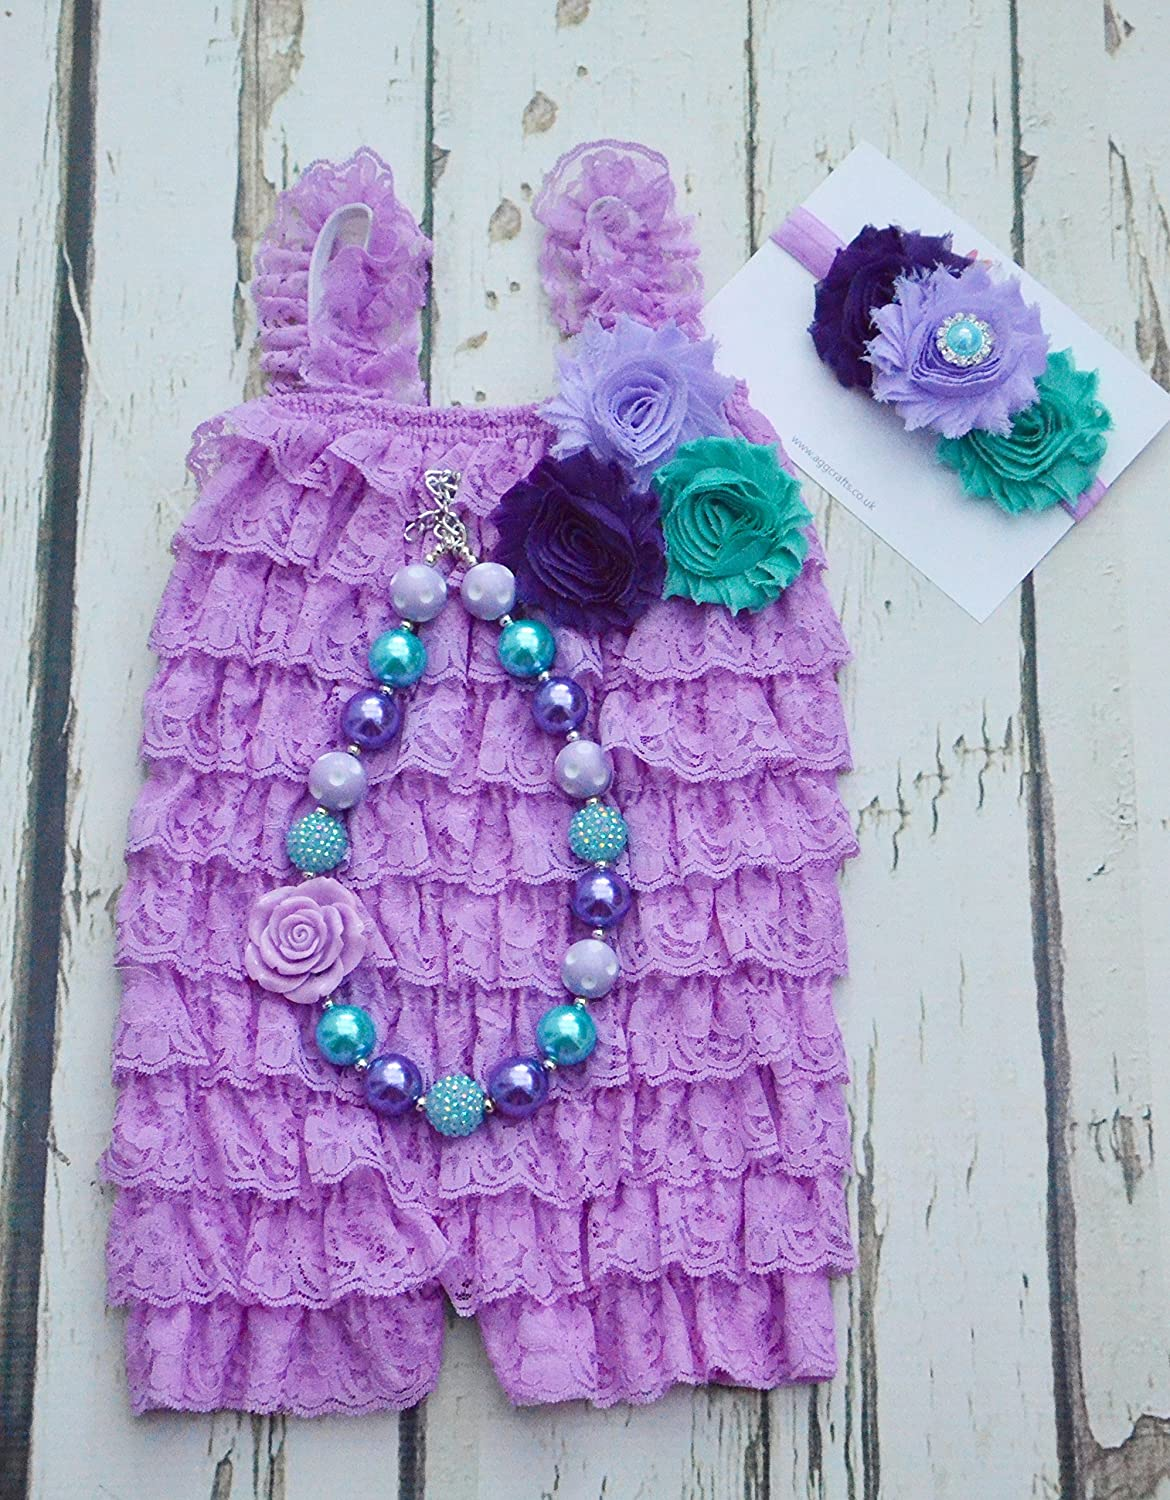 a3a4f4592 Lavender lace romper set: Amazon.co.uk: Handmade